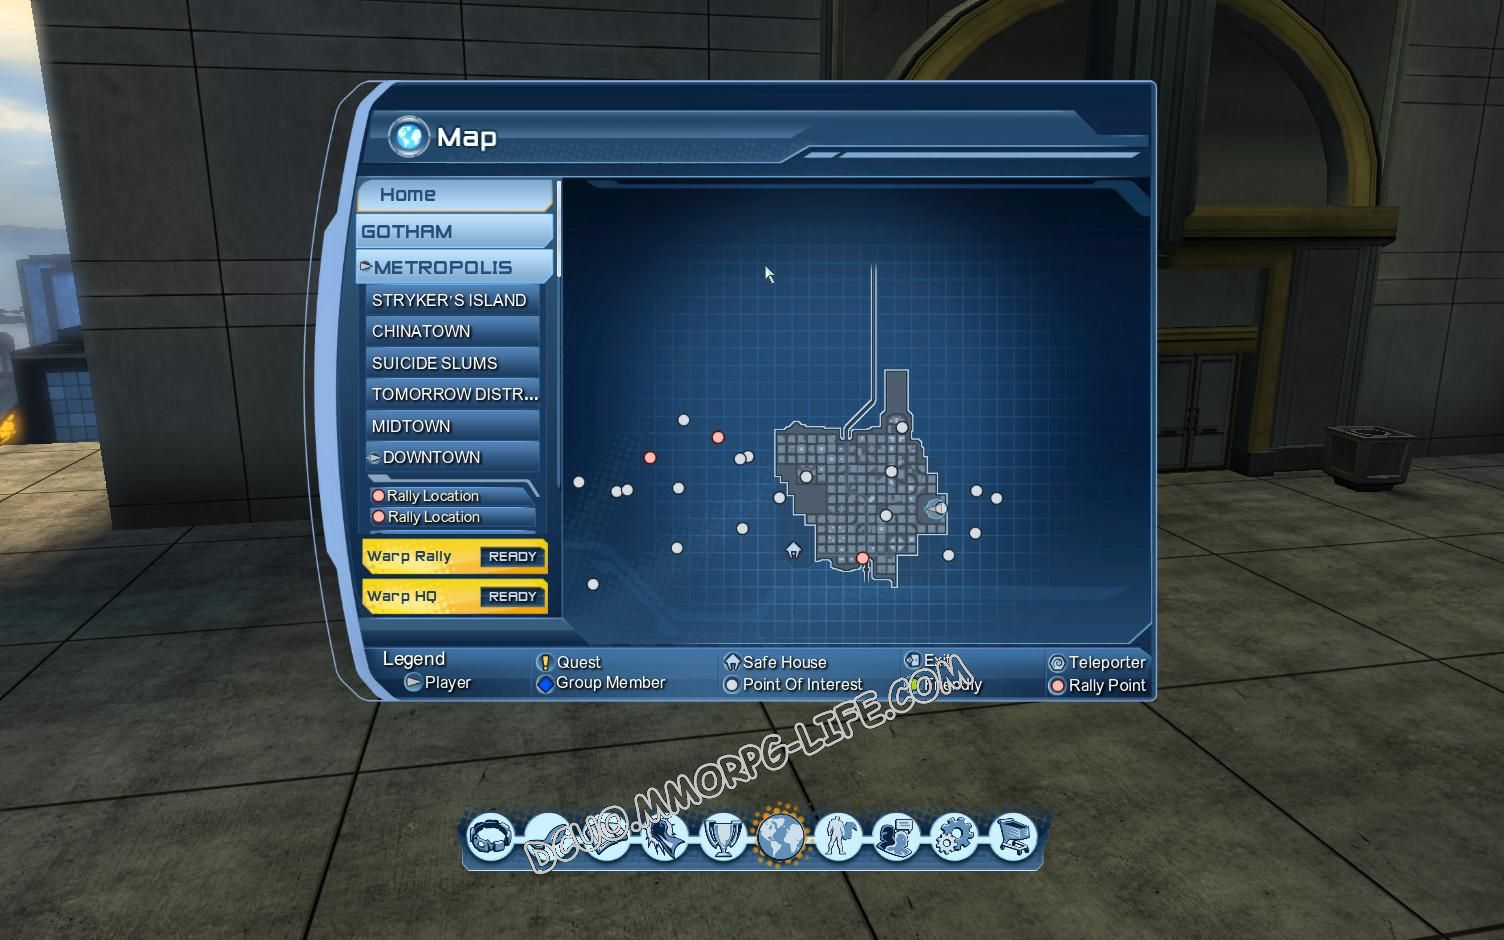 Briefing: LexCorp, step 3 LexCorp: Threats  image 1554 middle size